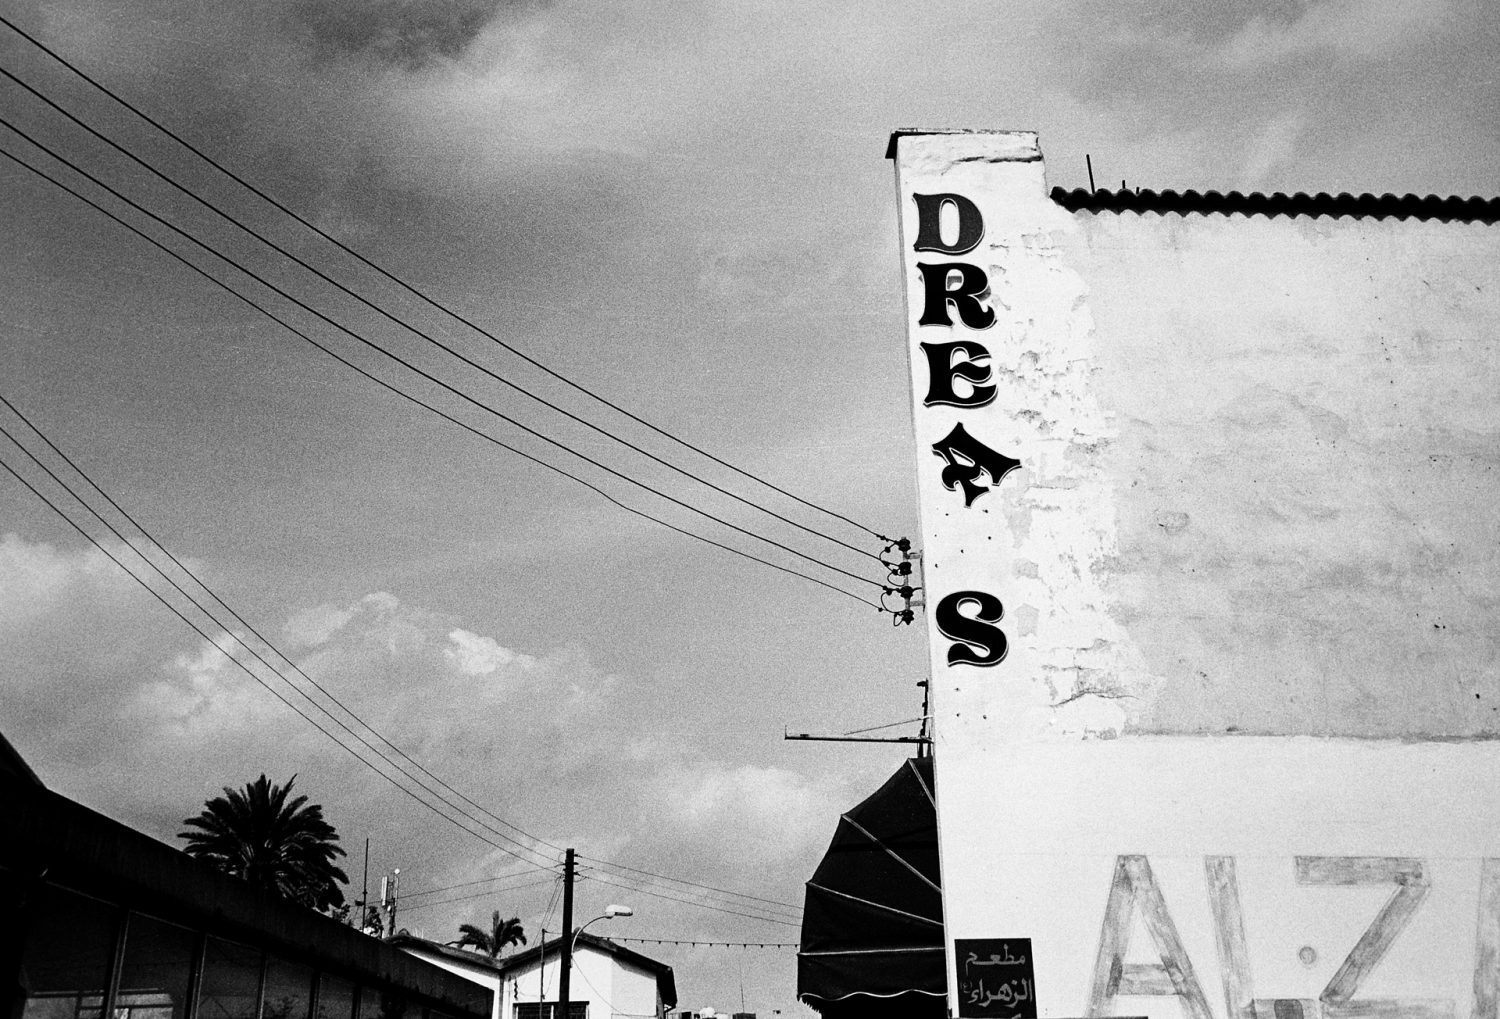 Broken Dreams – The Architecture of War Cyprus, 2009 to 2012. Silver gelatin print.